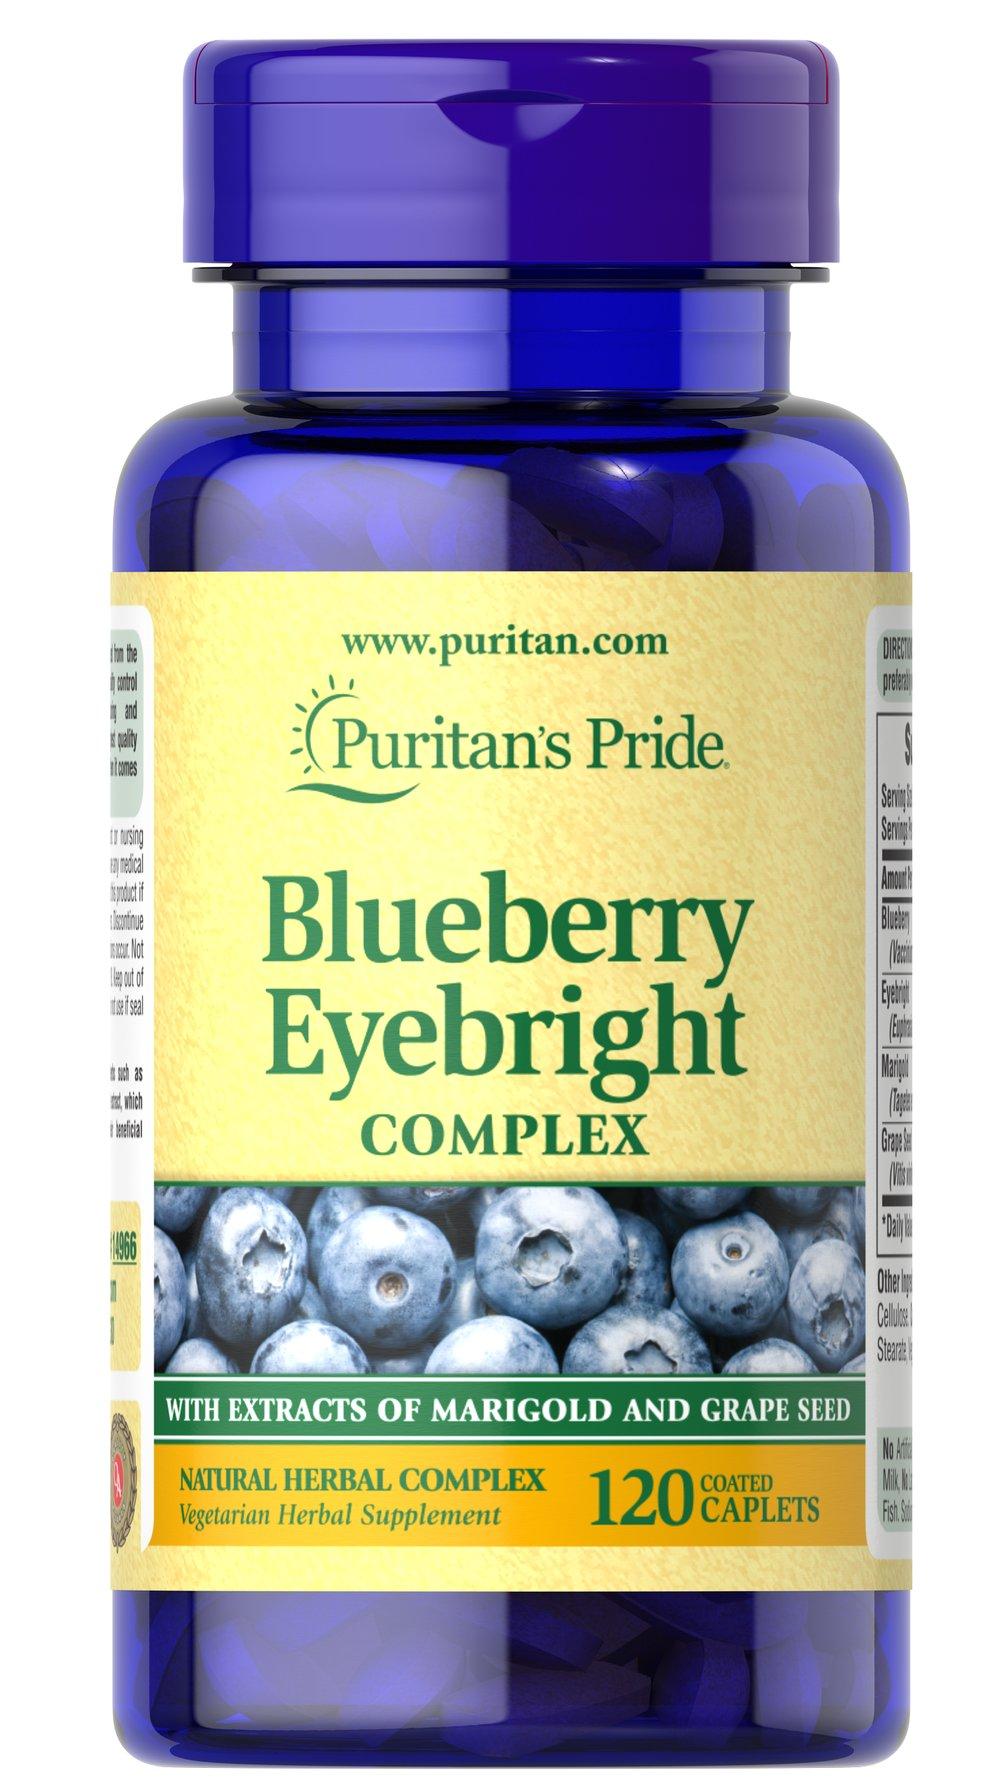 Blueberry Eyebright Complex • Provides powerful antioxidant support for every cell in your body, including the eye's cells**<br />• Blueberry extract is a natural source of two important phytochemicals, anthocyanins and chlorogenic acid, to support antioxidant health**<br />• Eyebright provides additional herbal support for good health<br />• Marigold and Grape Seed extracts are included for extra nutritional support<br />• Our vegetarian-friendly caplets are coated for e